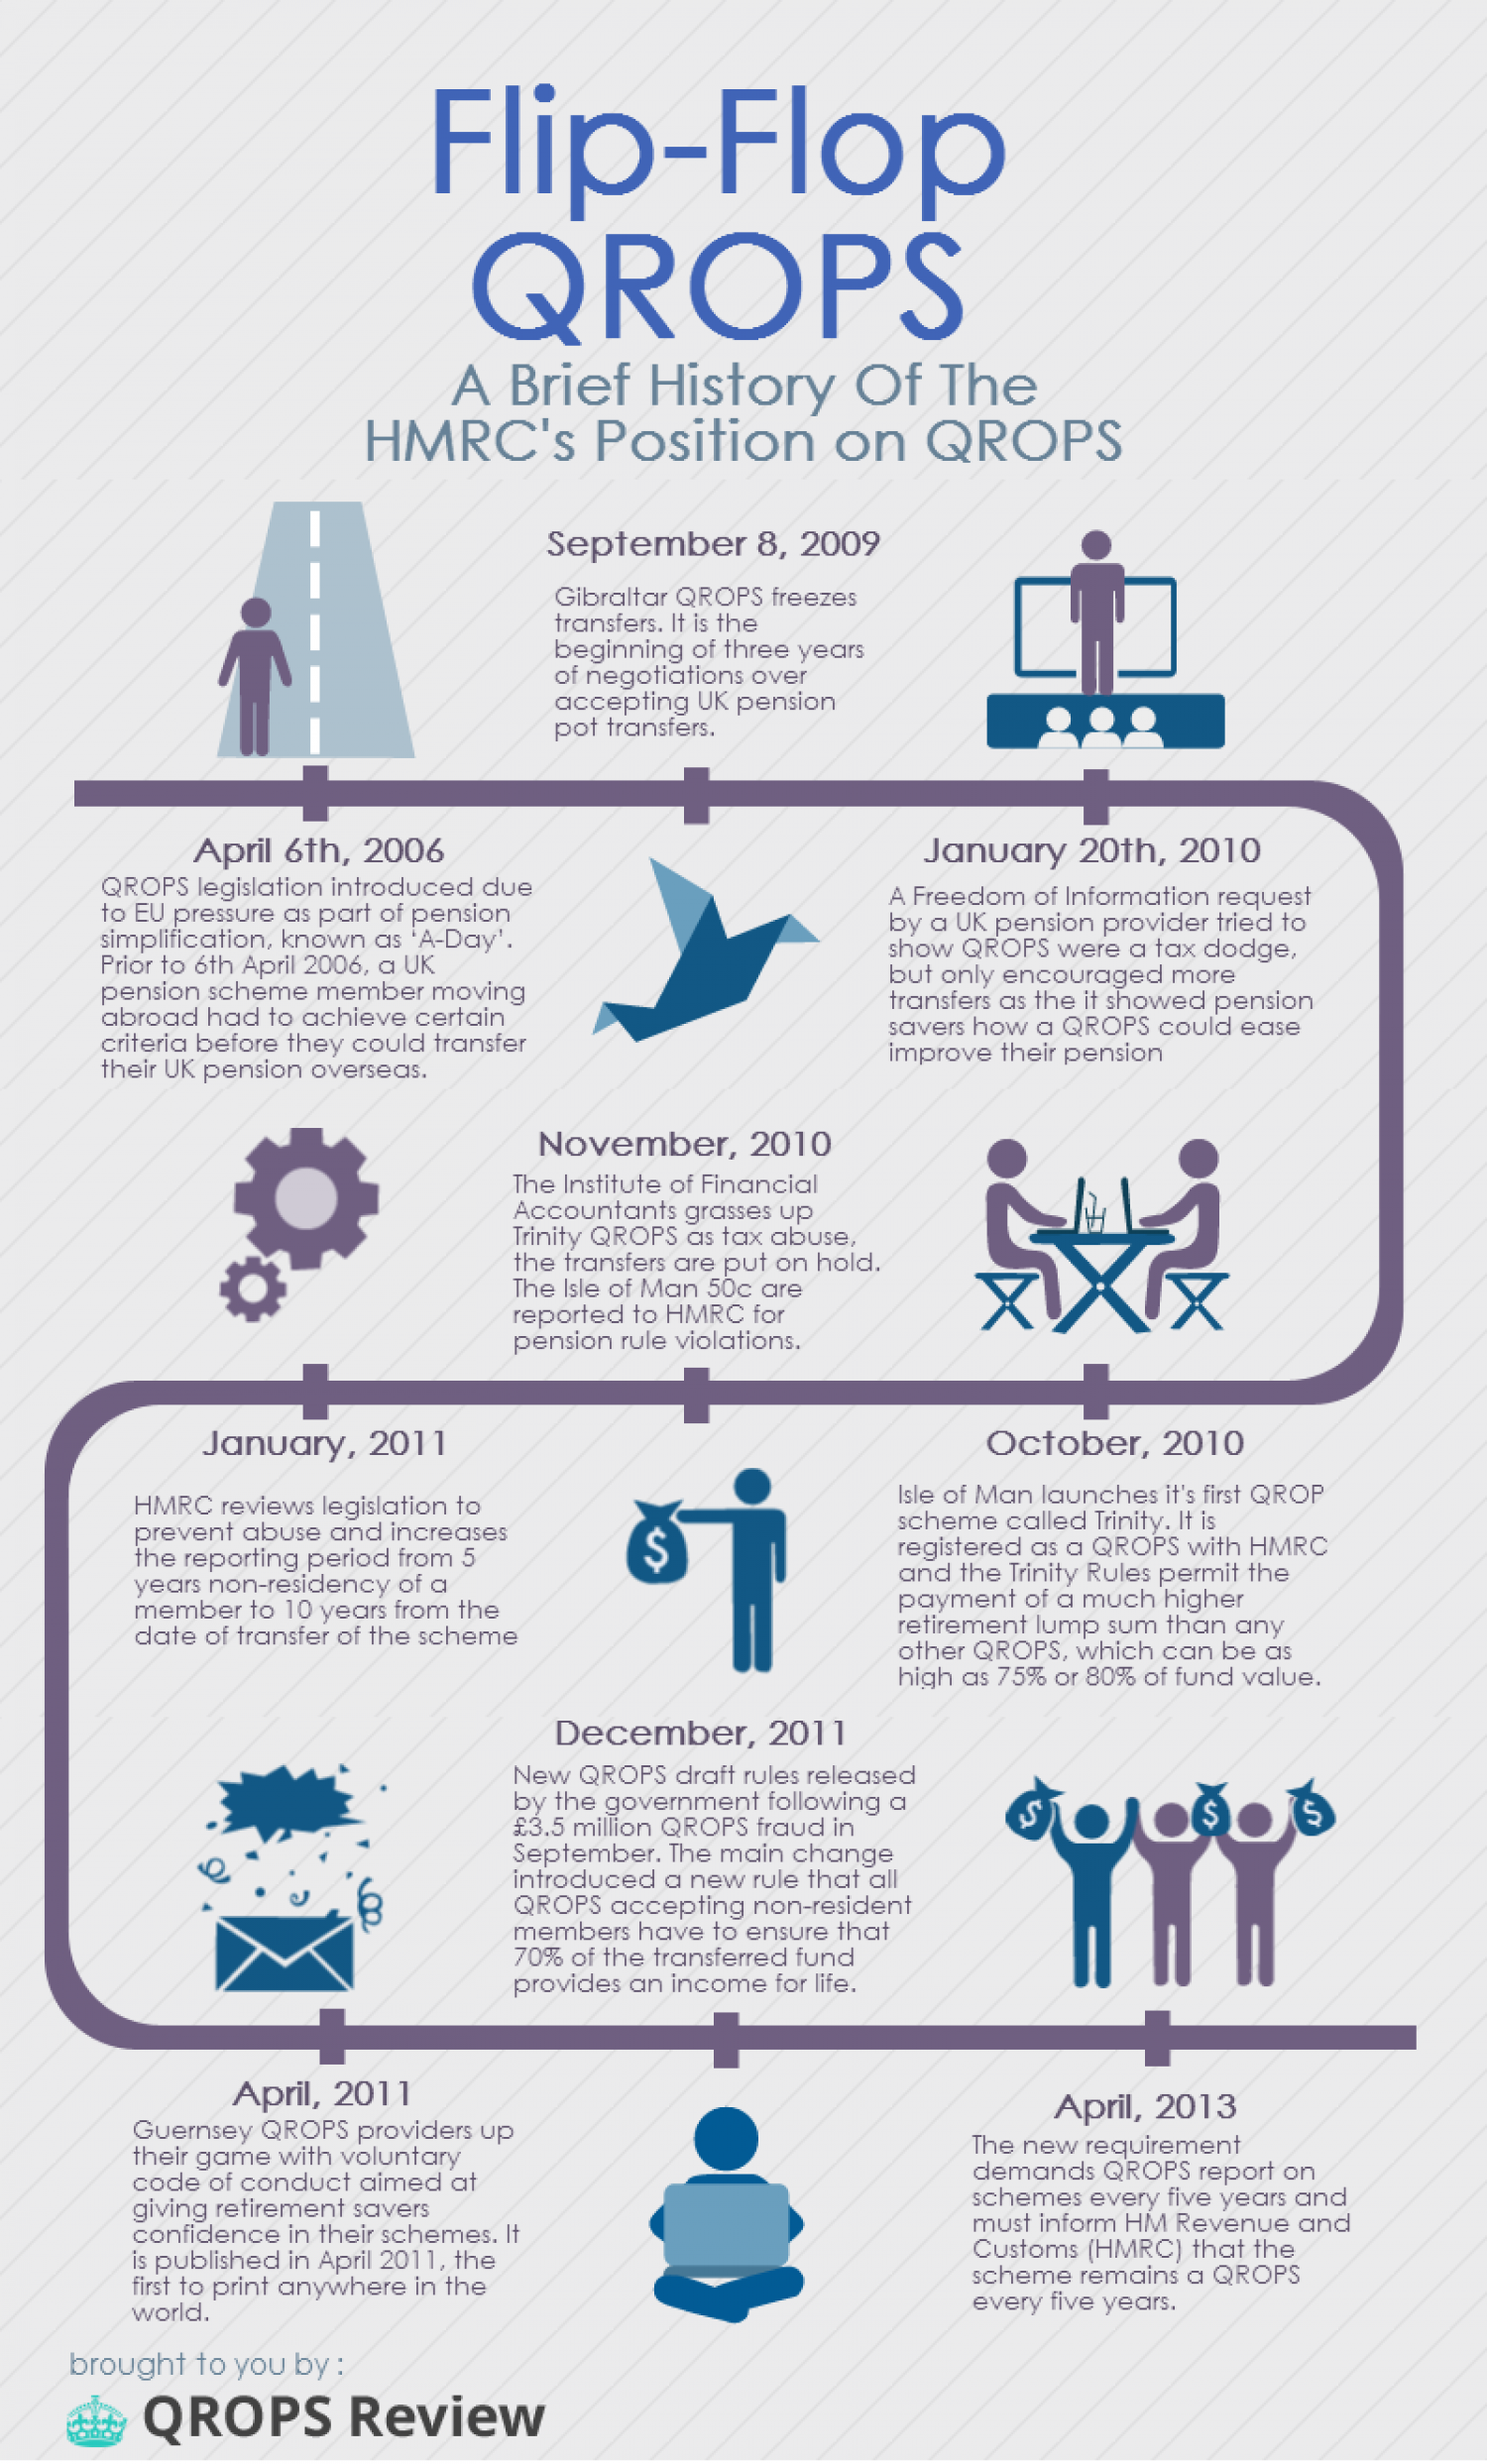 Flip-Flop QROPS: A Brief History of QROPS Infographic